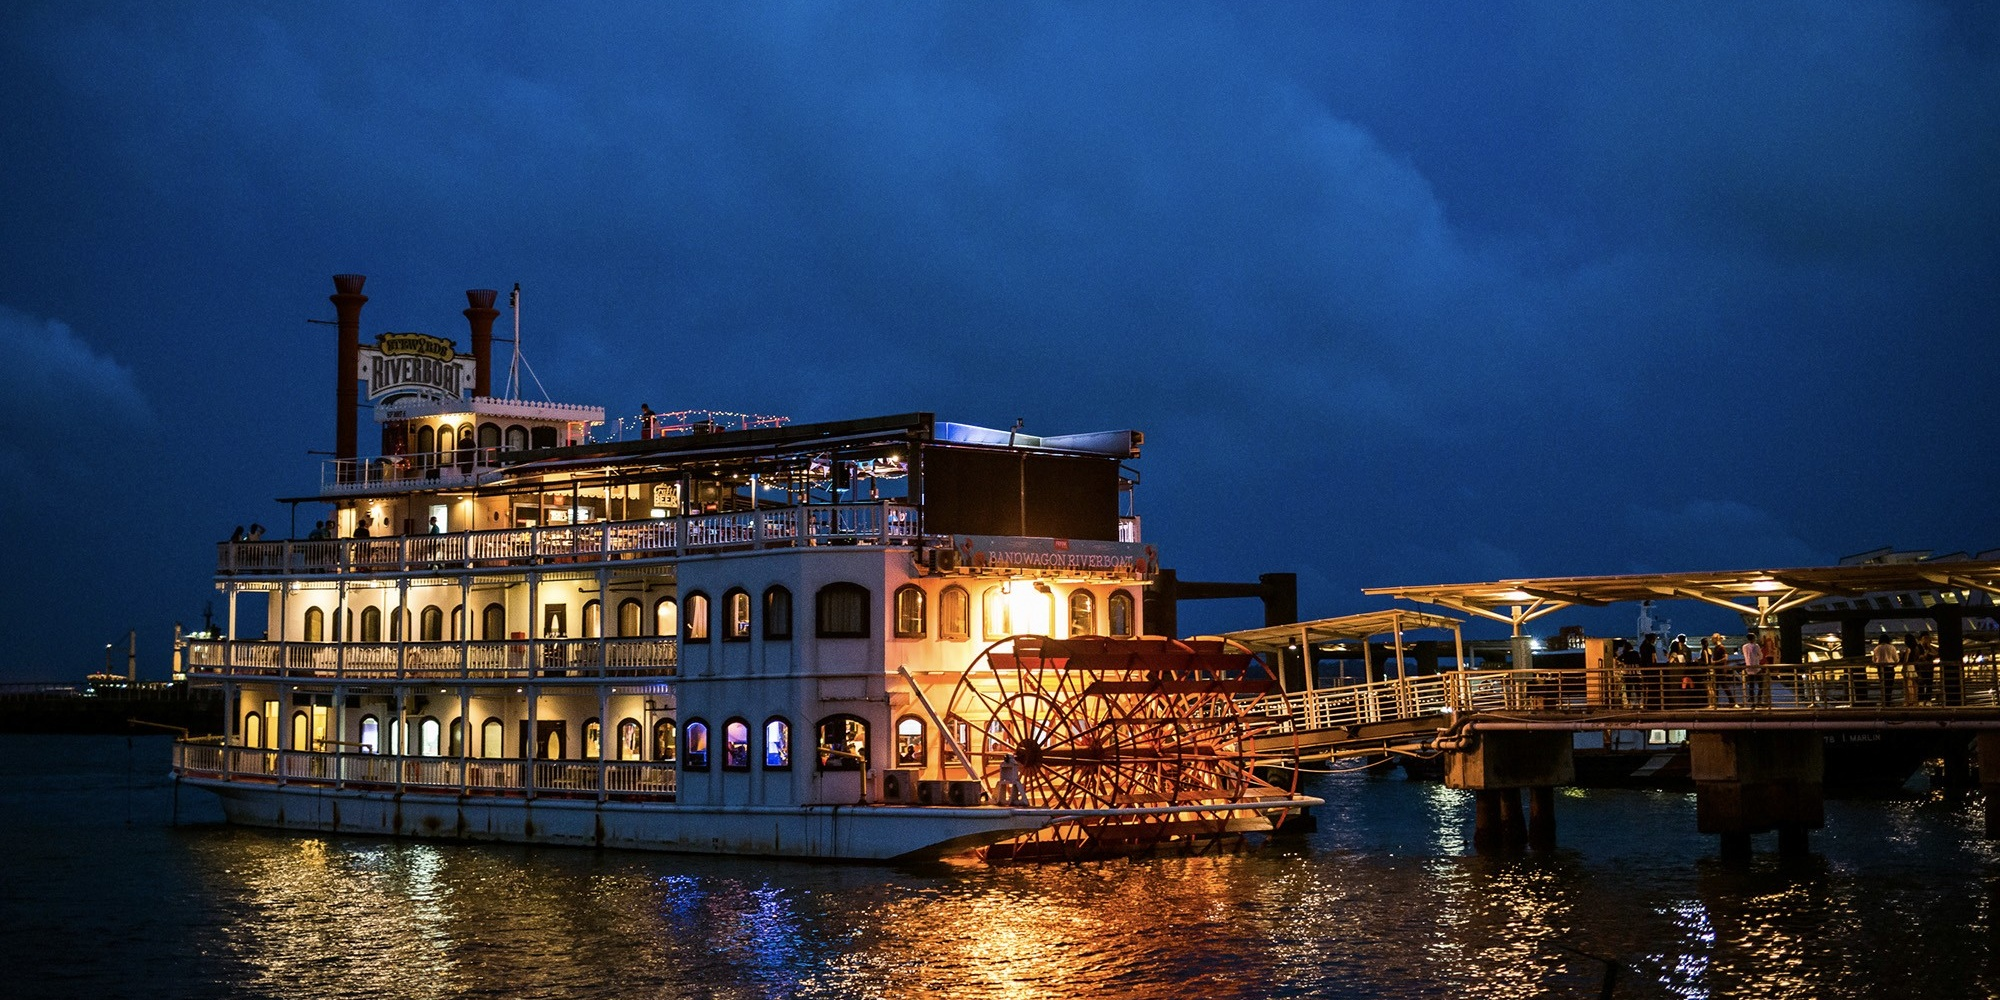 Bandwagon Riverboat returns with an all-night house and techno party till sunrise